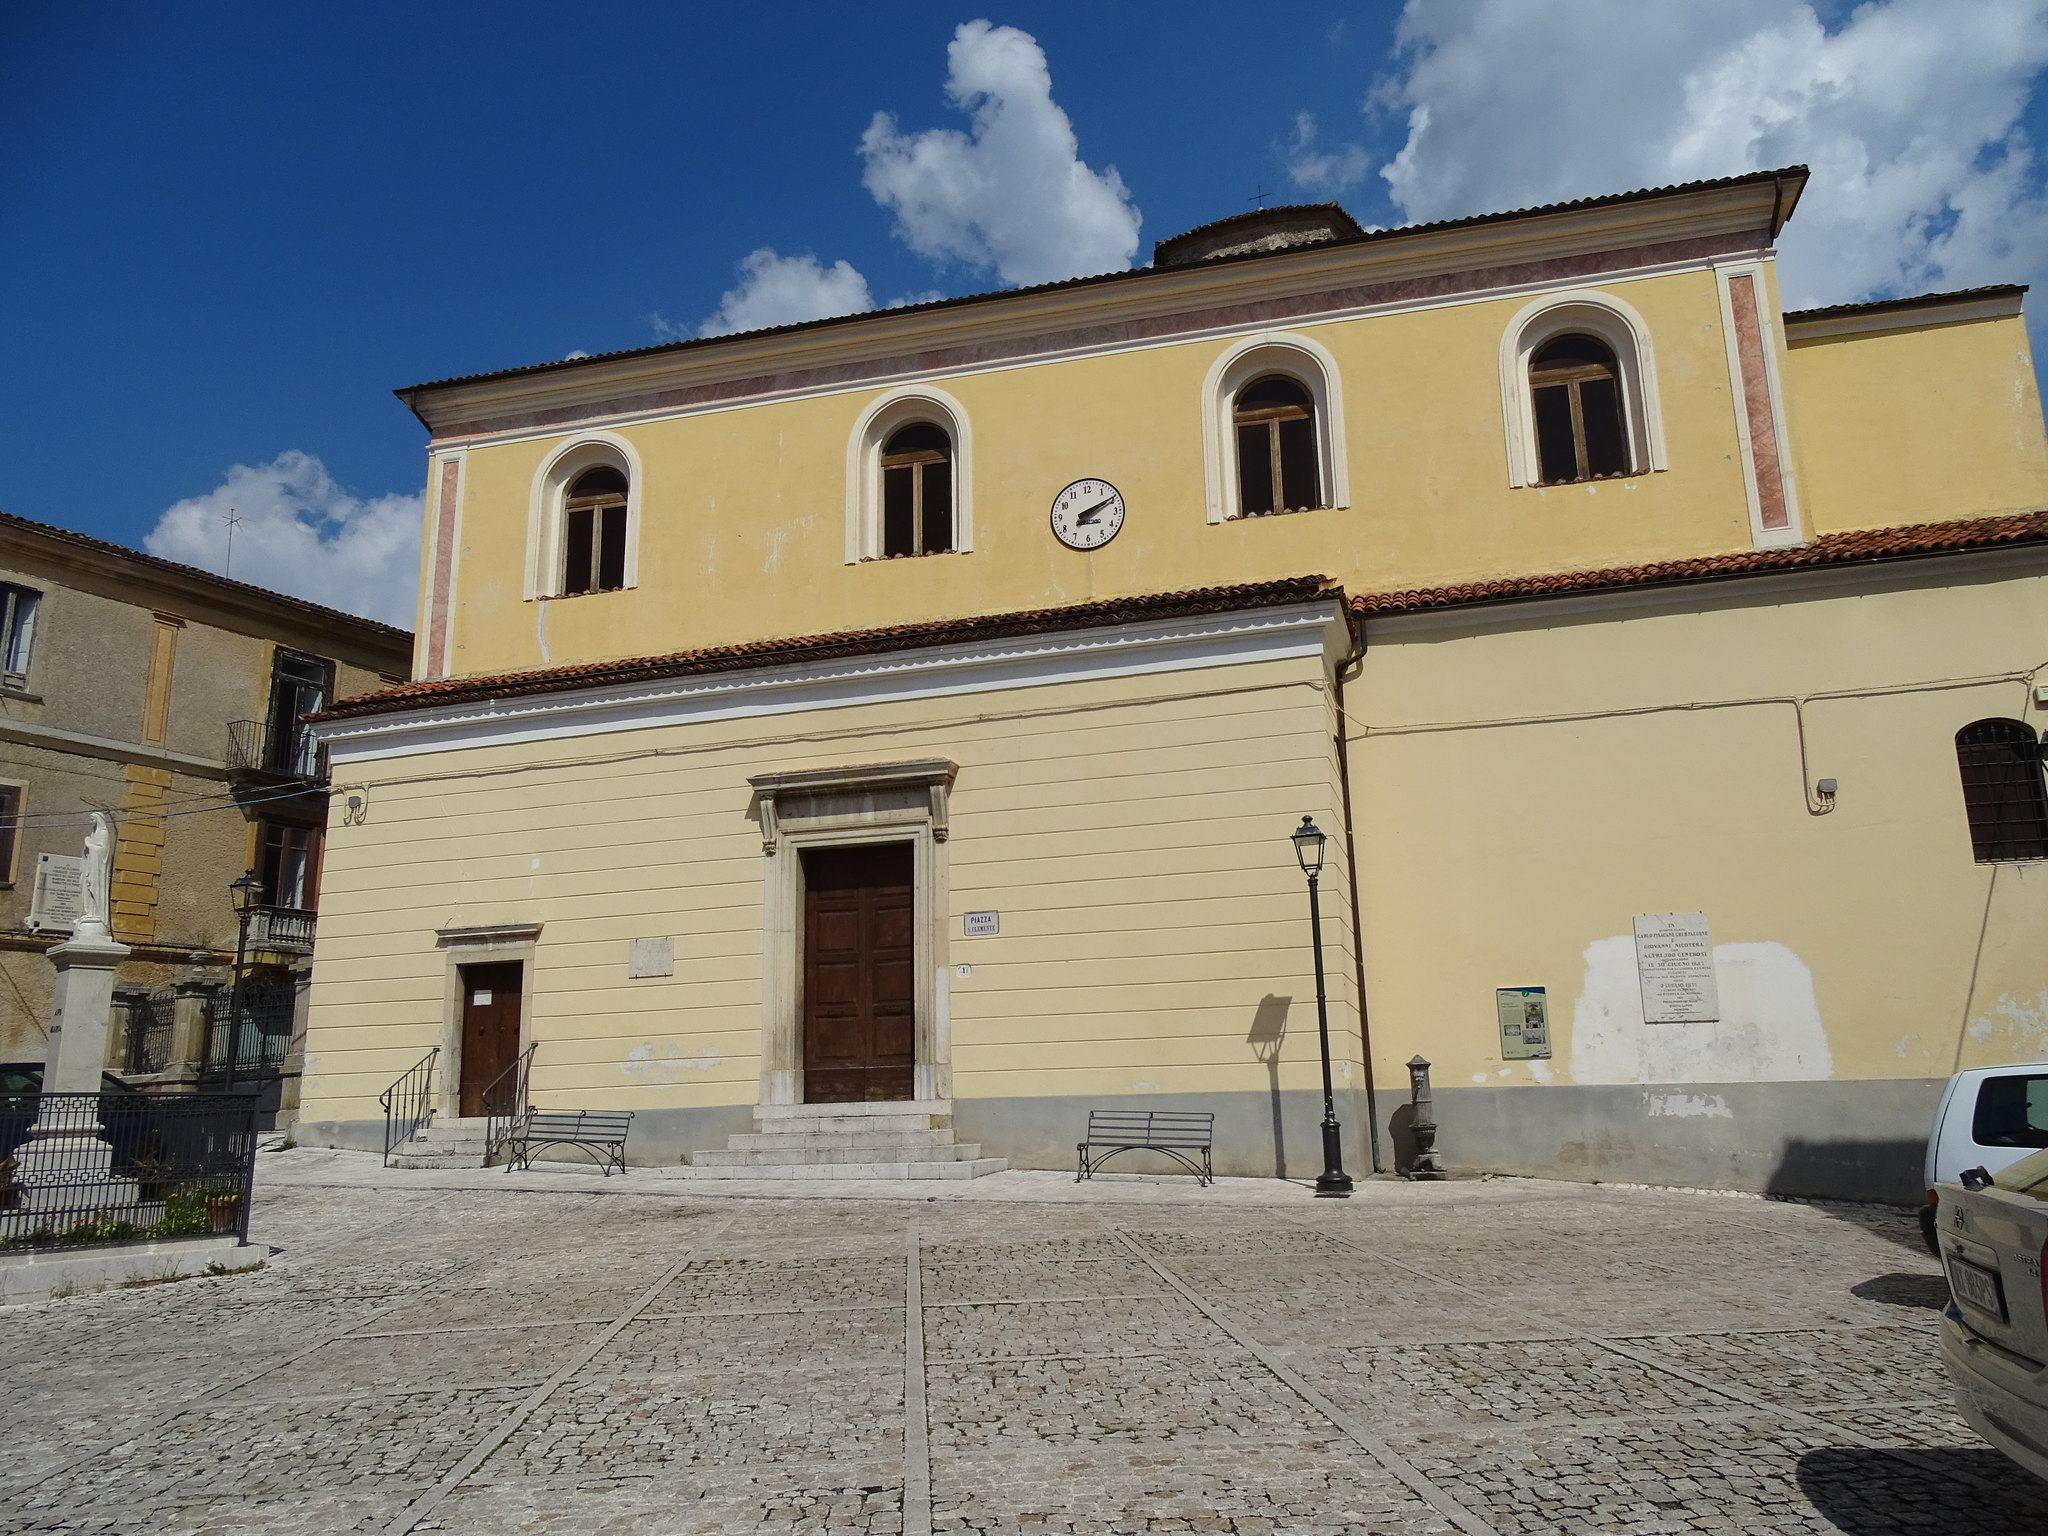 Chiesa S. Clemente